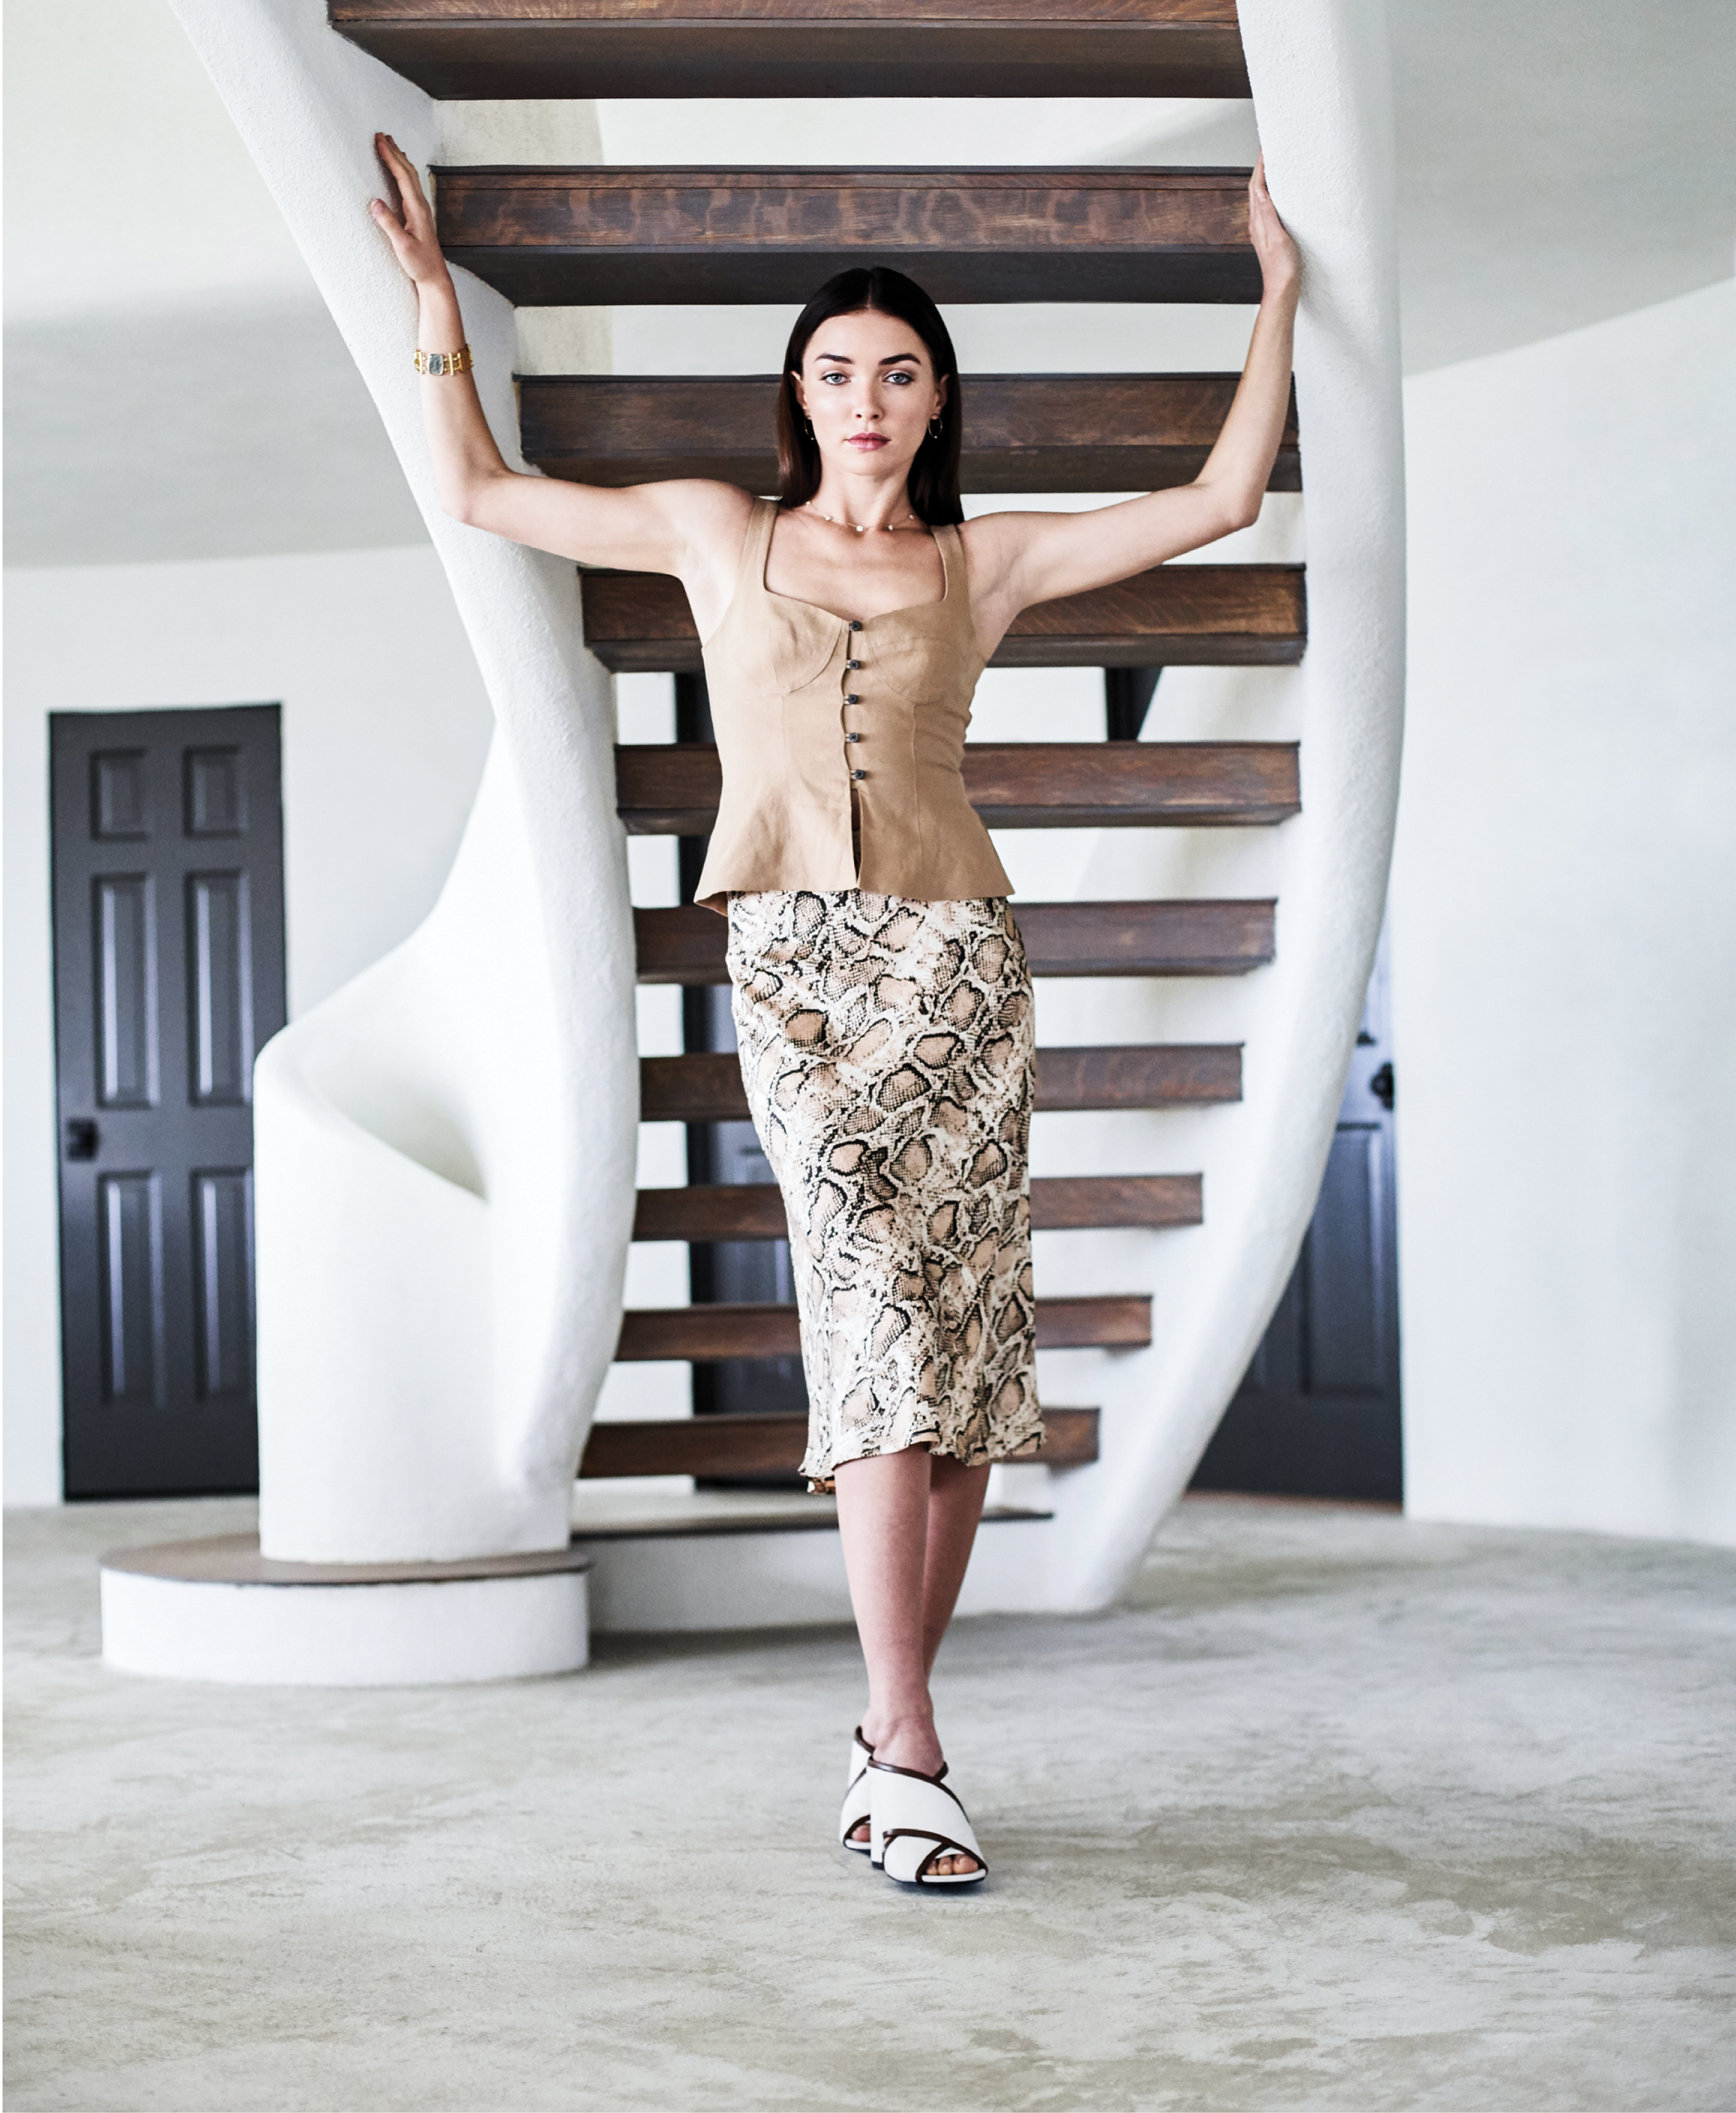 "NATURAL SELECTION - Mara Hoffman ""Lola"" top in ""khaki,"" $325 at Hampden Clothing; Olivaceous ""Kiki"" snakeskin-print midi skirt, $42 at House of Sage; Stuart Weitzman ""Sam 75"" crisscross leather slides, $475 at Gwynn's of Mount Pleasant; Elizabeth Locke 19K hammered gold and Venetian glass ""Muse"" bracelet, $11,950, and 14K gold and diamond earrings, $595, both at Croghan's Jewel Box; custom 14K gold and diamond necklace with diamond flower clusters, price upon request at Diamonds Direct"